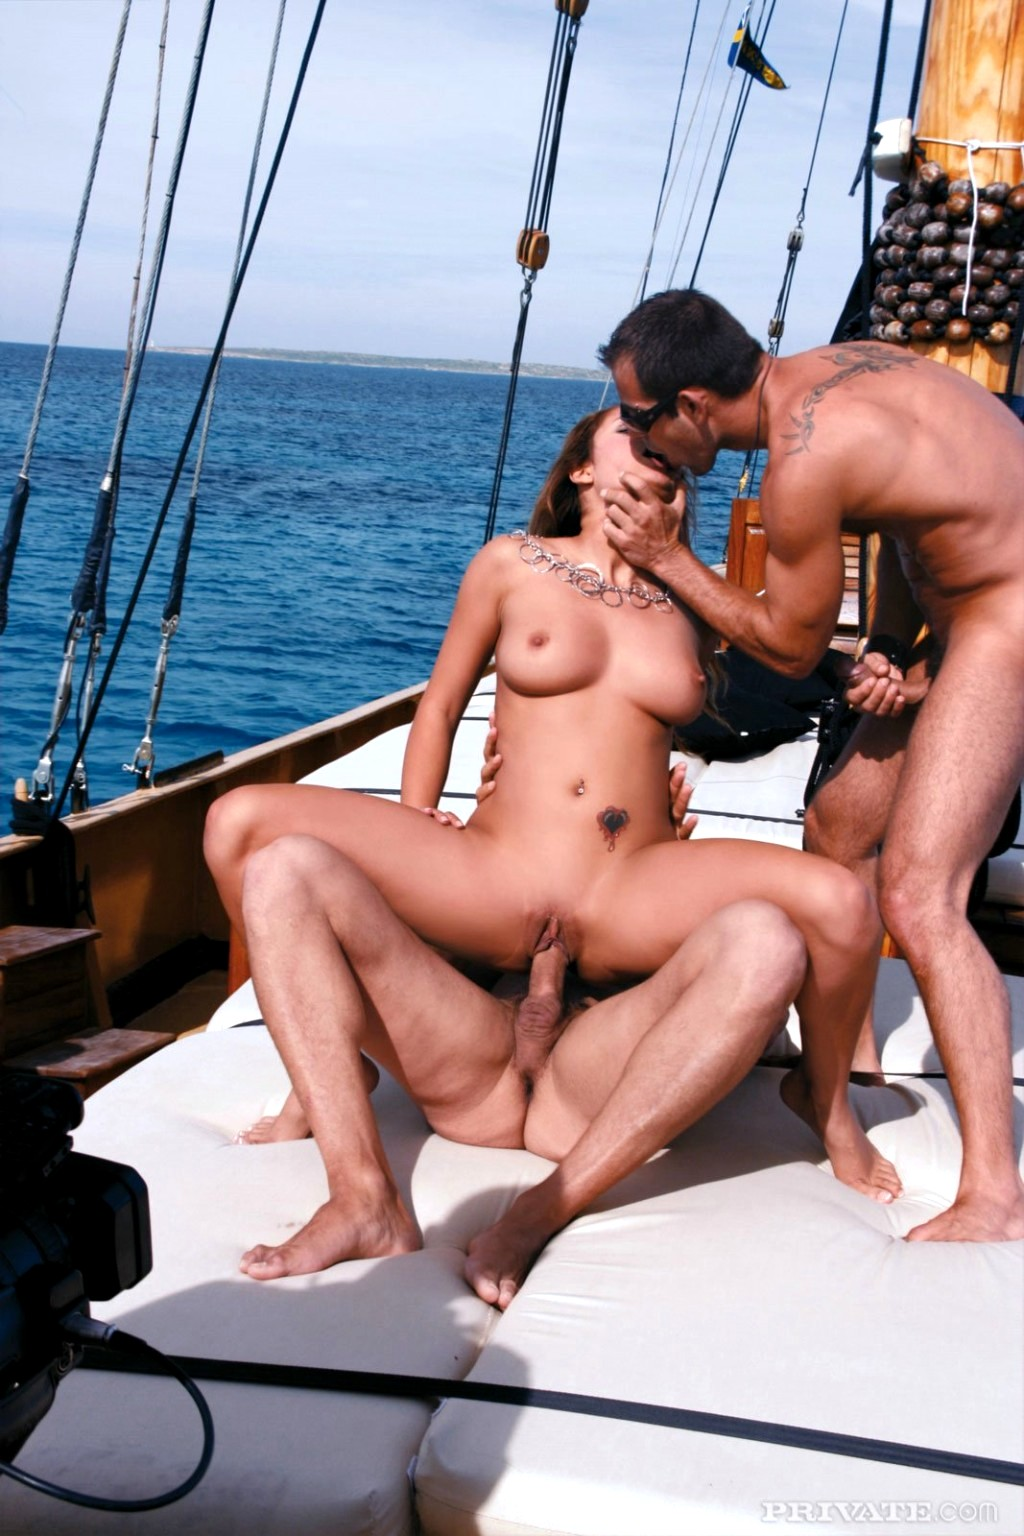 fuck-sex-on-sailboat-video-porn-star